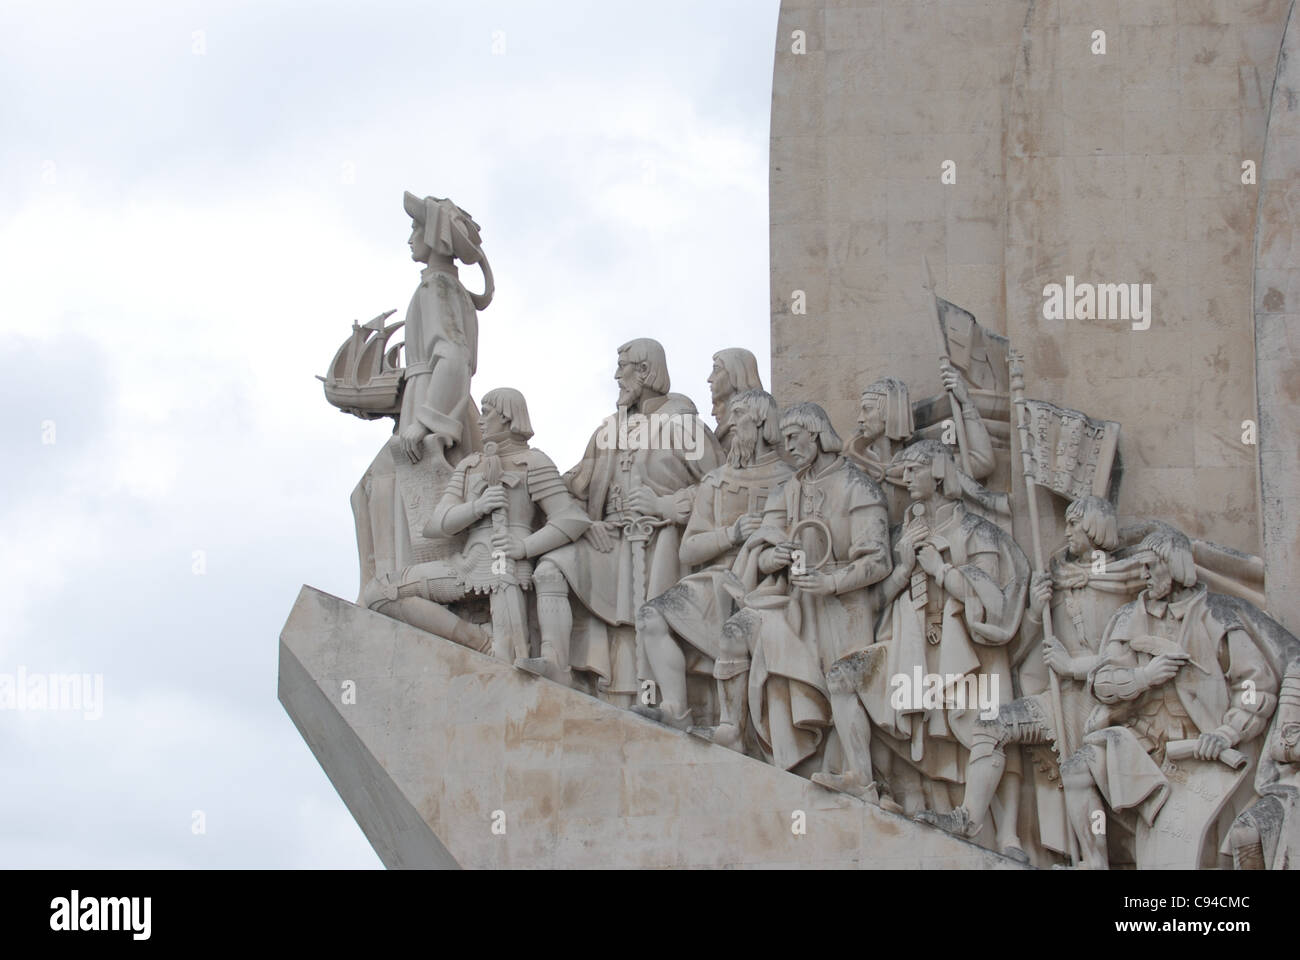 Portugal, Lisbon, Belem district, the Discoveries Monument - Stock Image